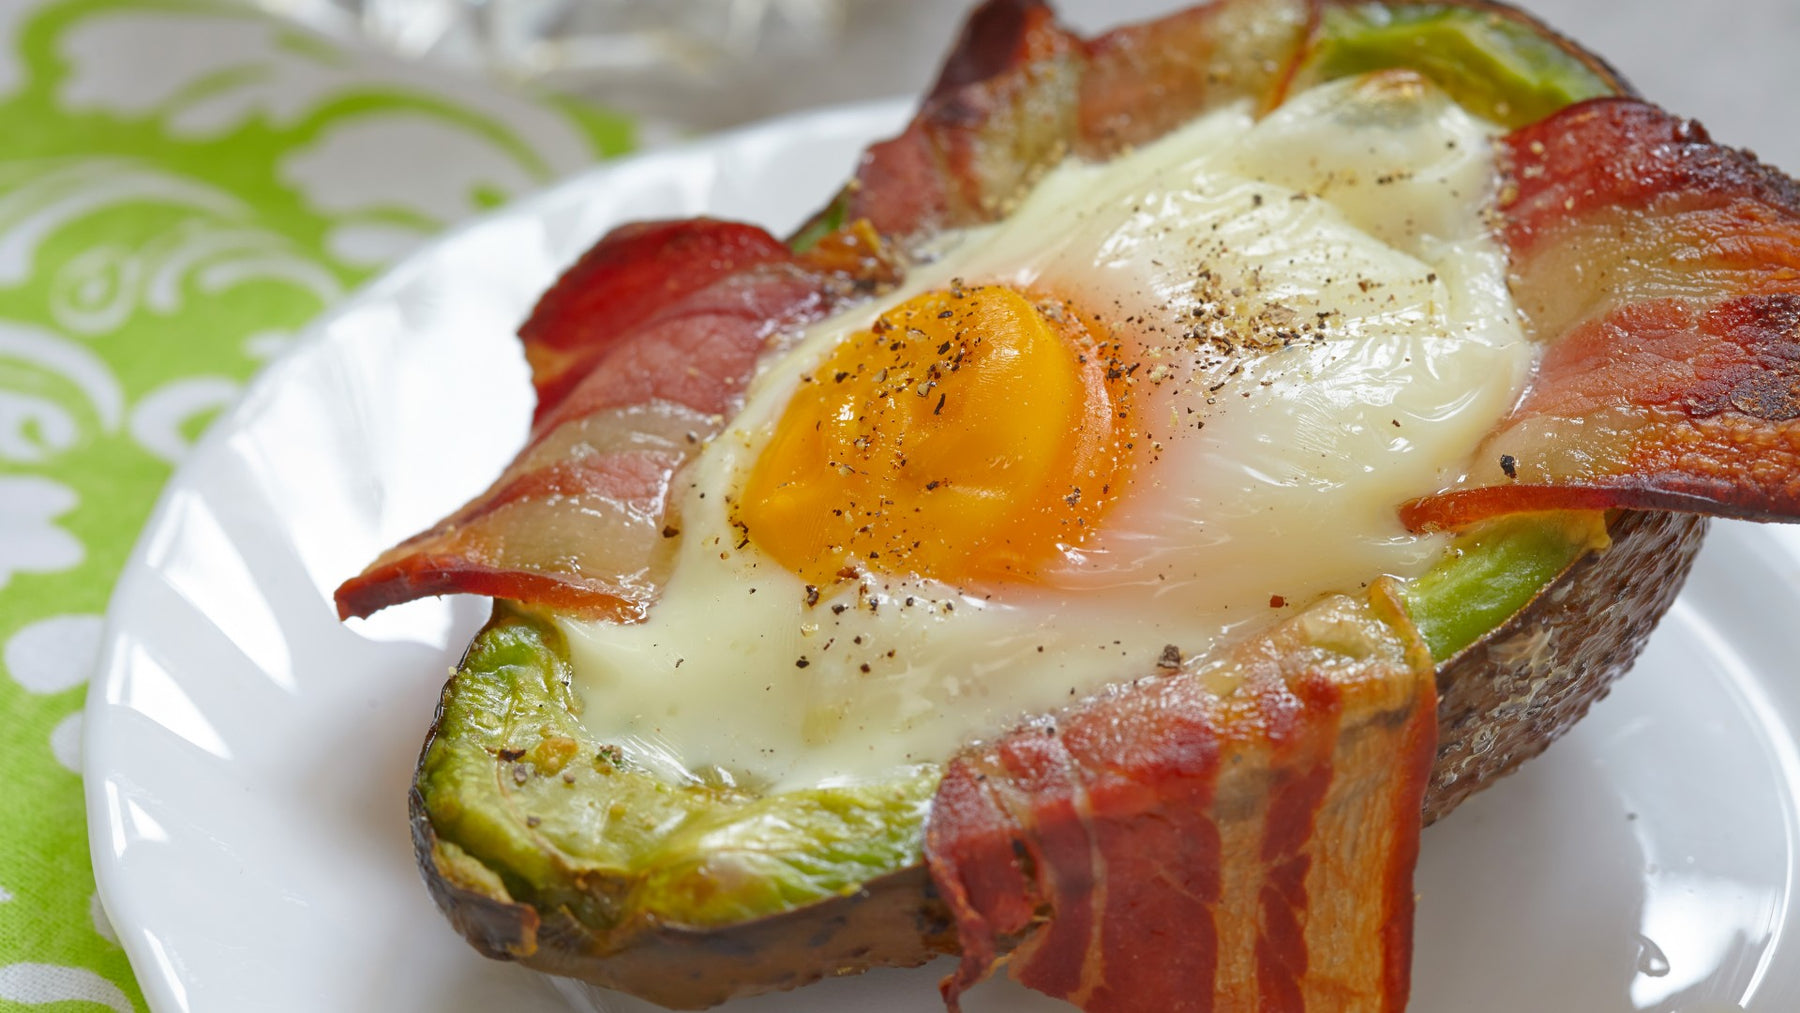 Biohacking Breakfast - Why High Fat is a Great Option